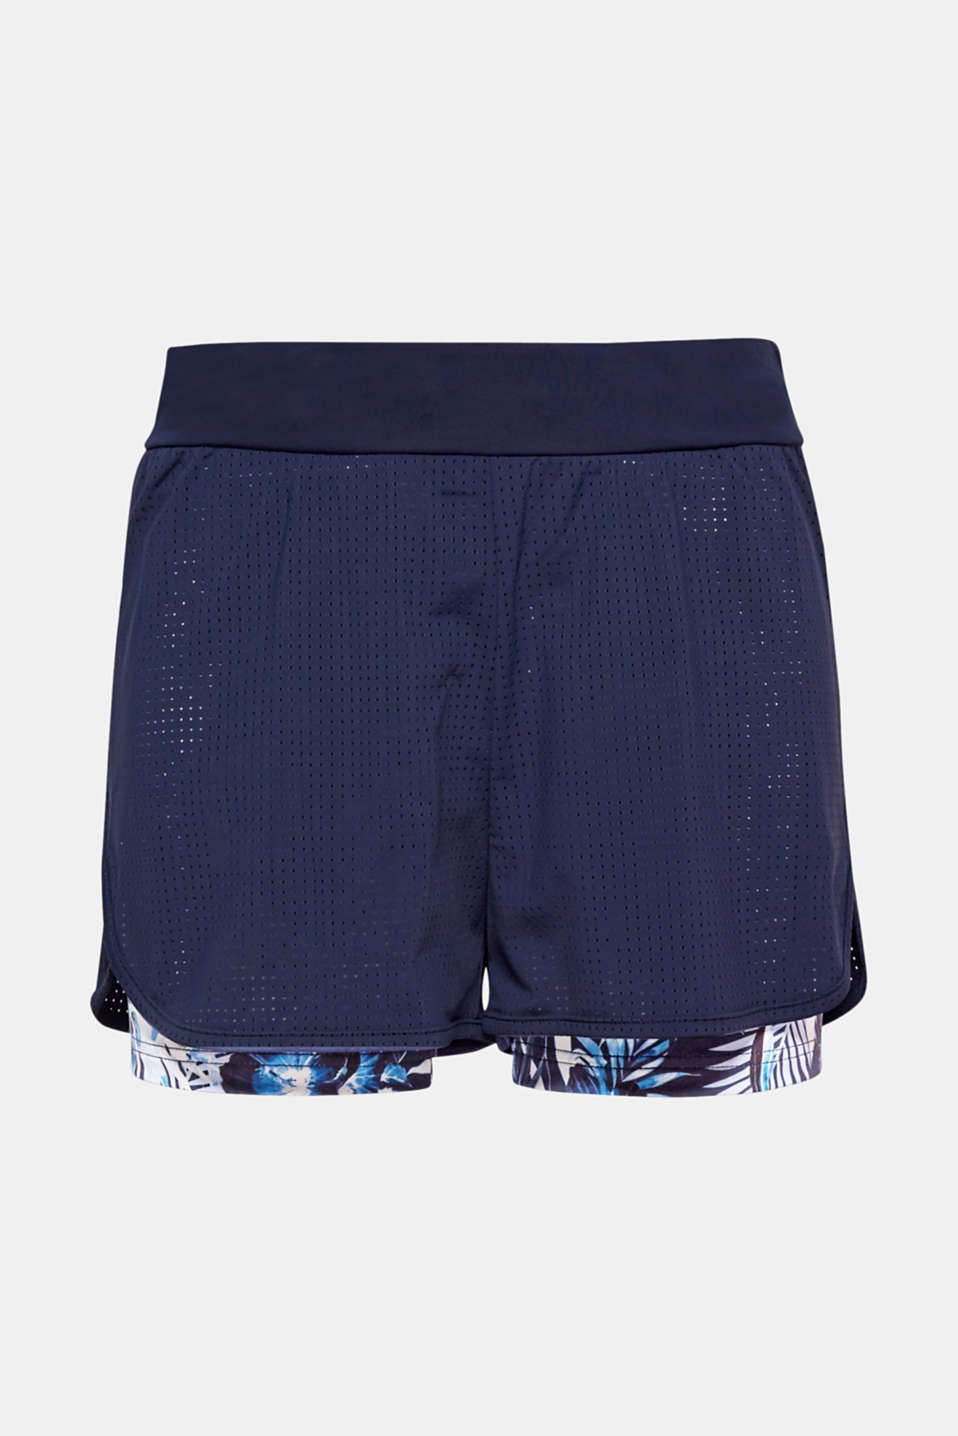 Functional layered look: These active shorts catch the eye with the openwork pattern, floral print and E-DRY technology!